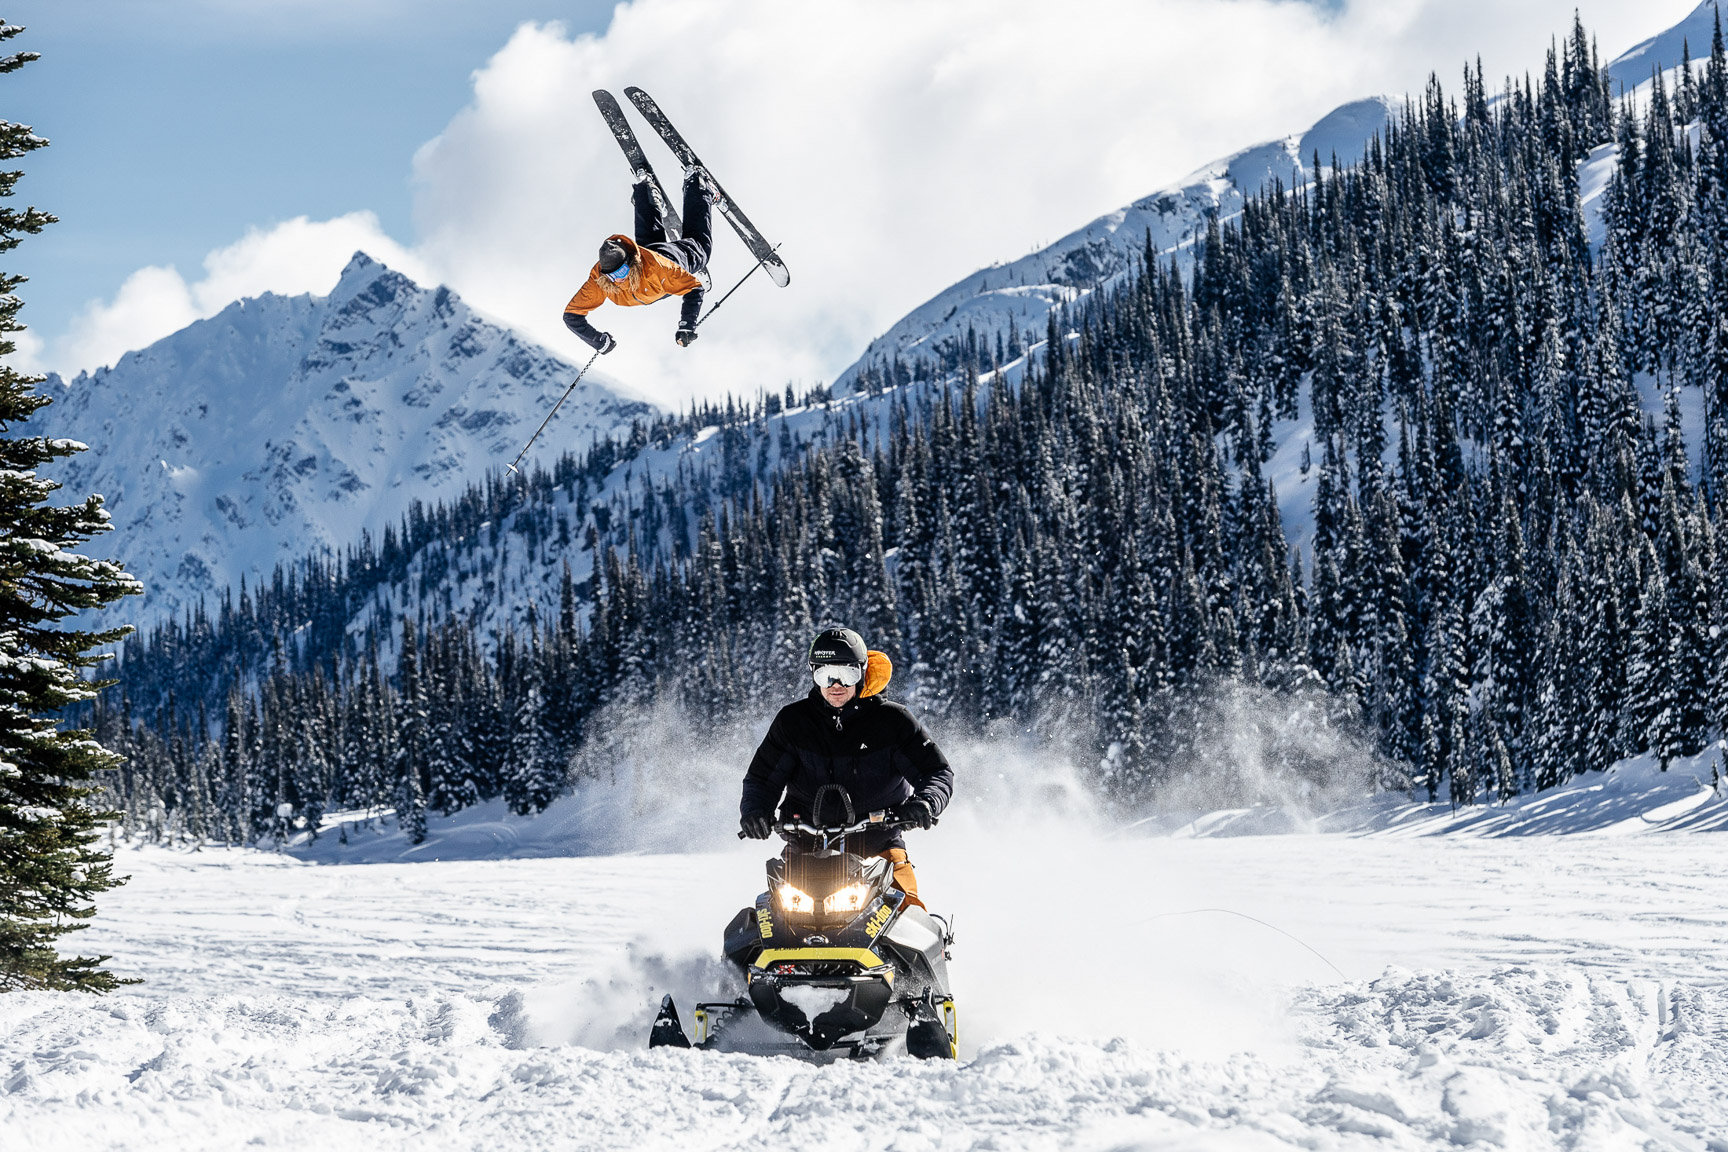 Banks Gilberti and Rory Bushfield. Pemberton, Canada